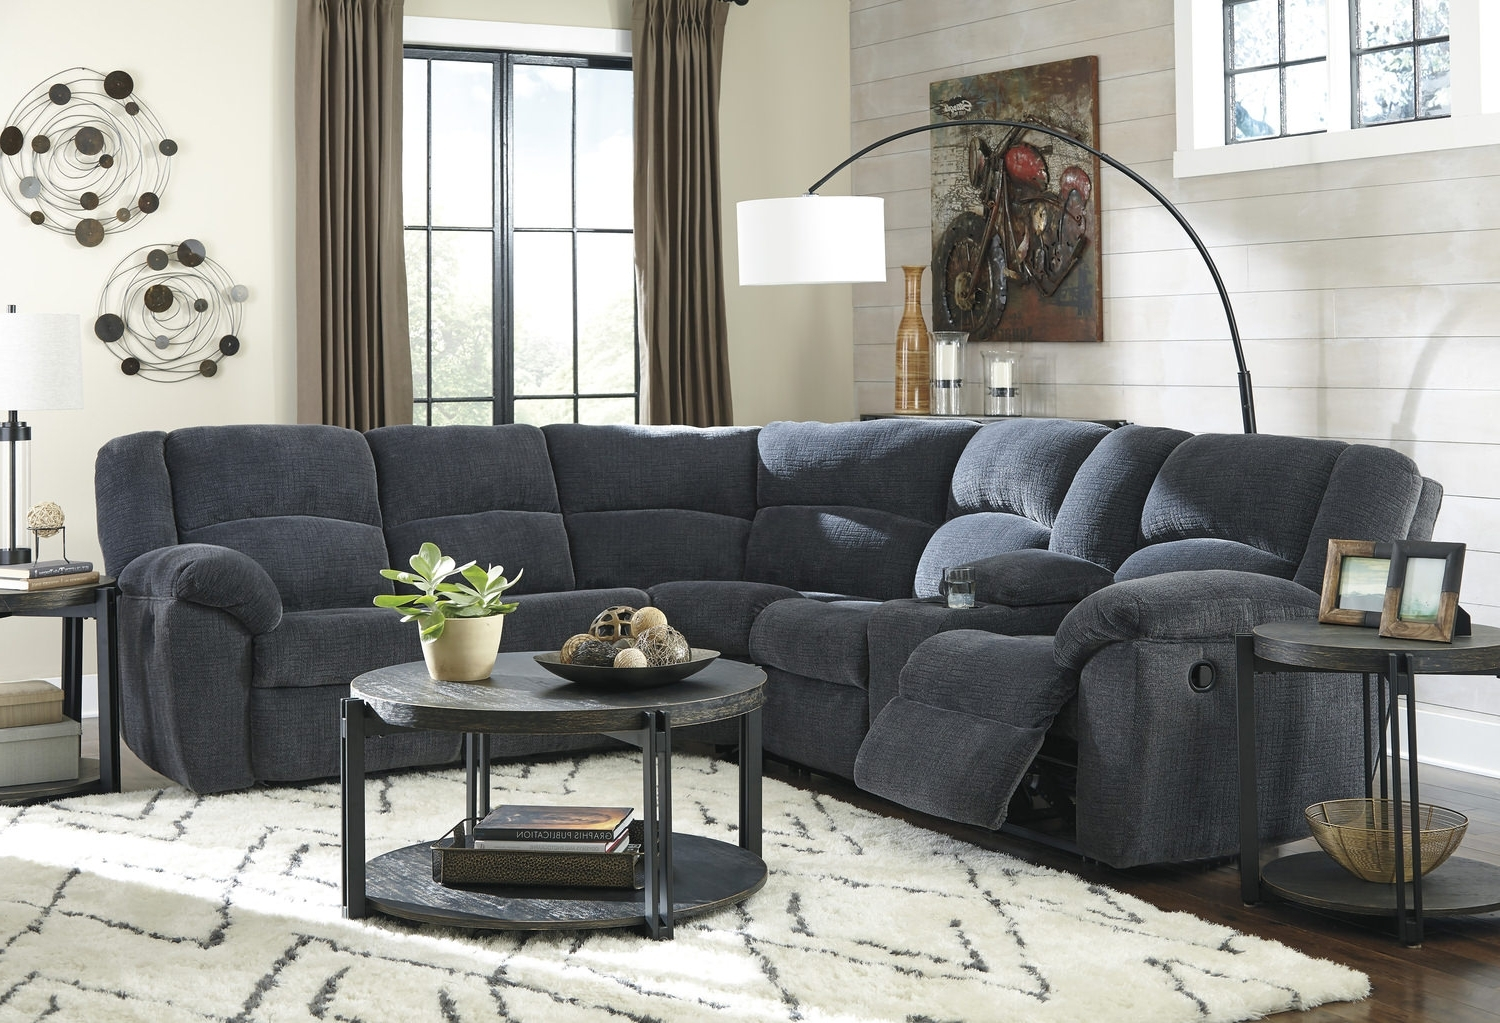 Texas 2 Piece Reclining Sectional (View 14 of 15)